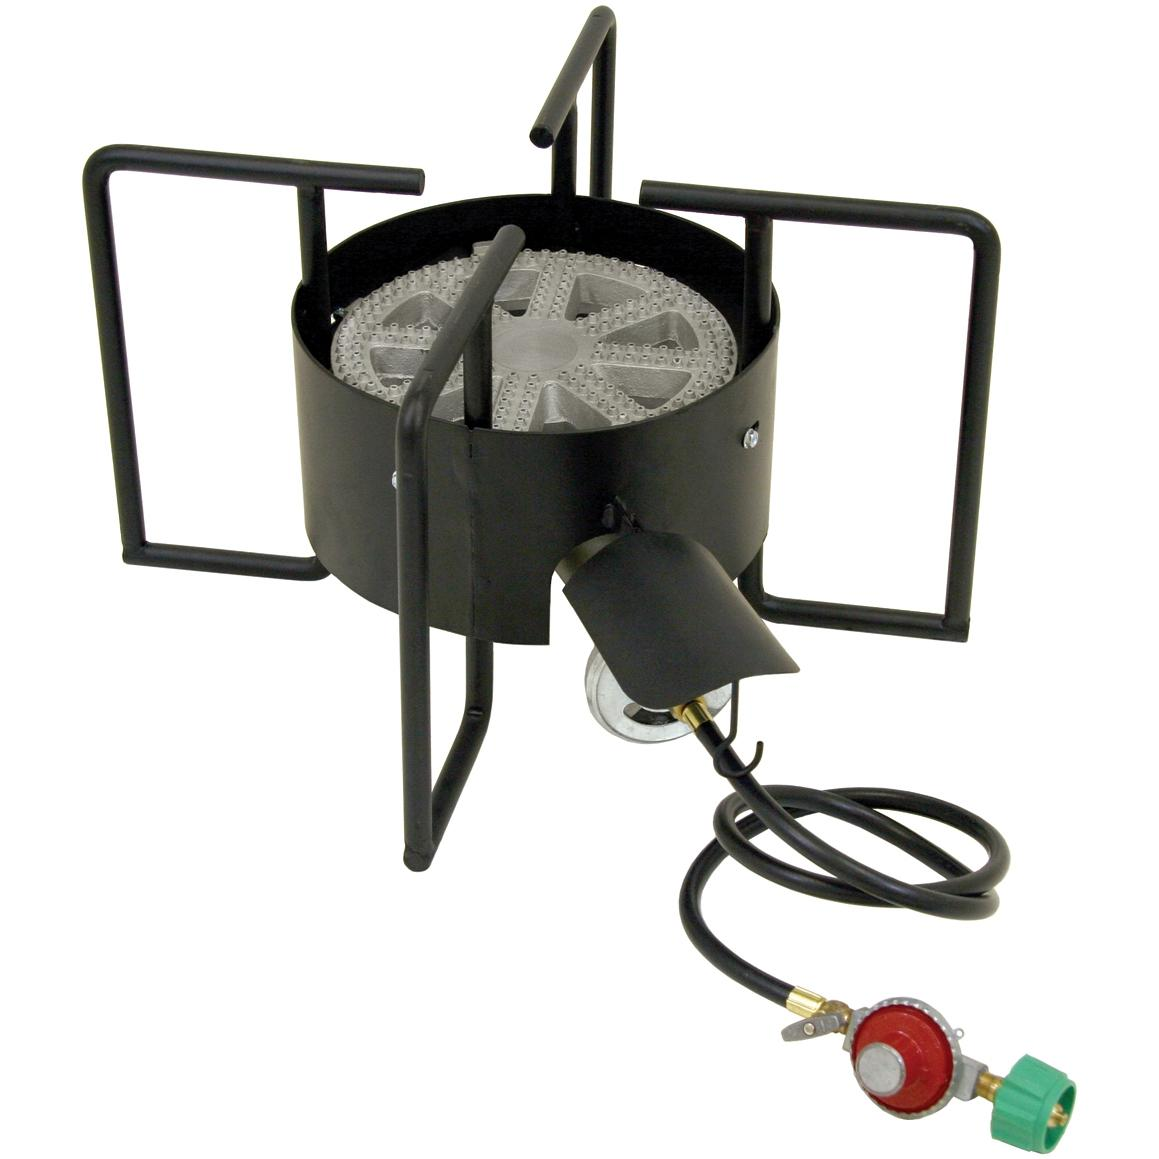 Bayou Classic Outdoor Stove With Hose Guard 22 Inch Low Pressure Bayou Cooker